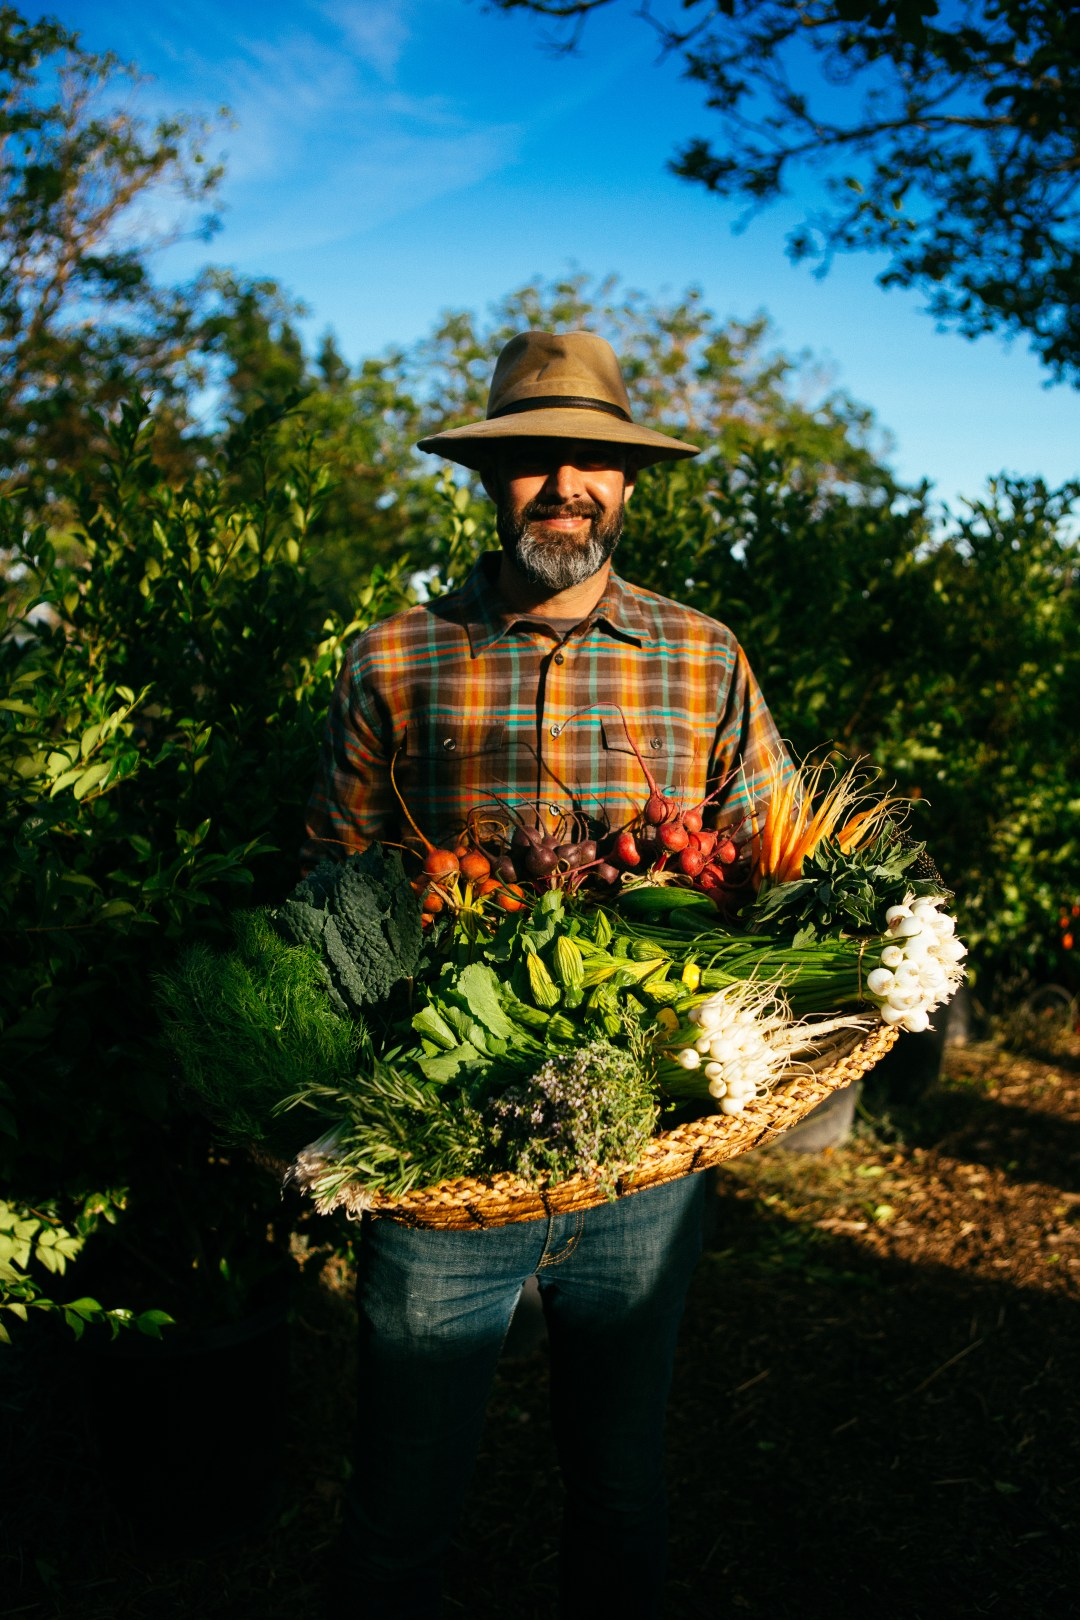 Kendall-Jackson Farm to Table Farmer